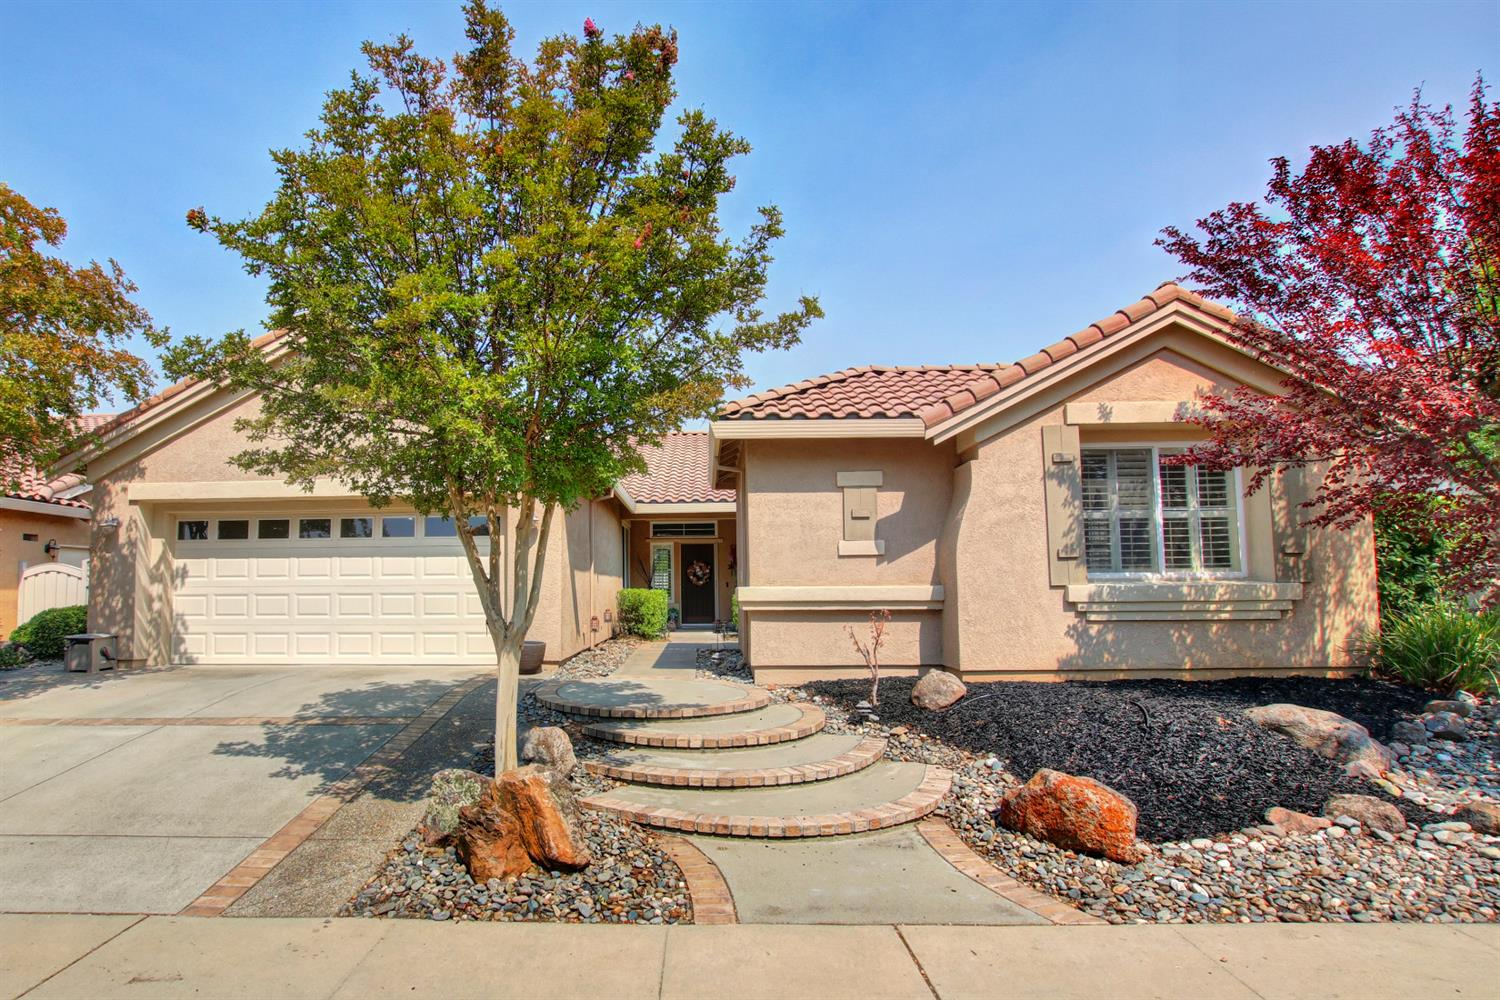 8093 Stagecoach Circle, Roseville, CA 95747